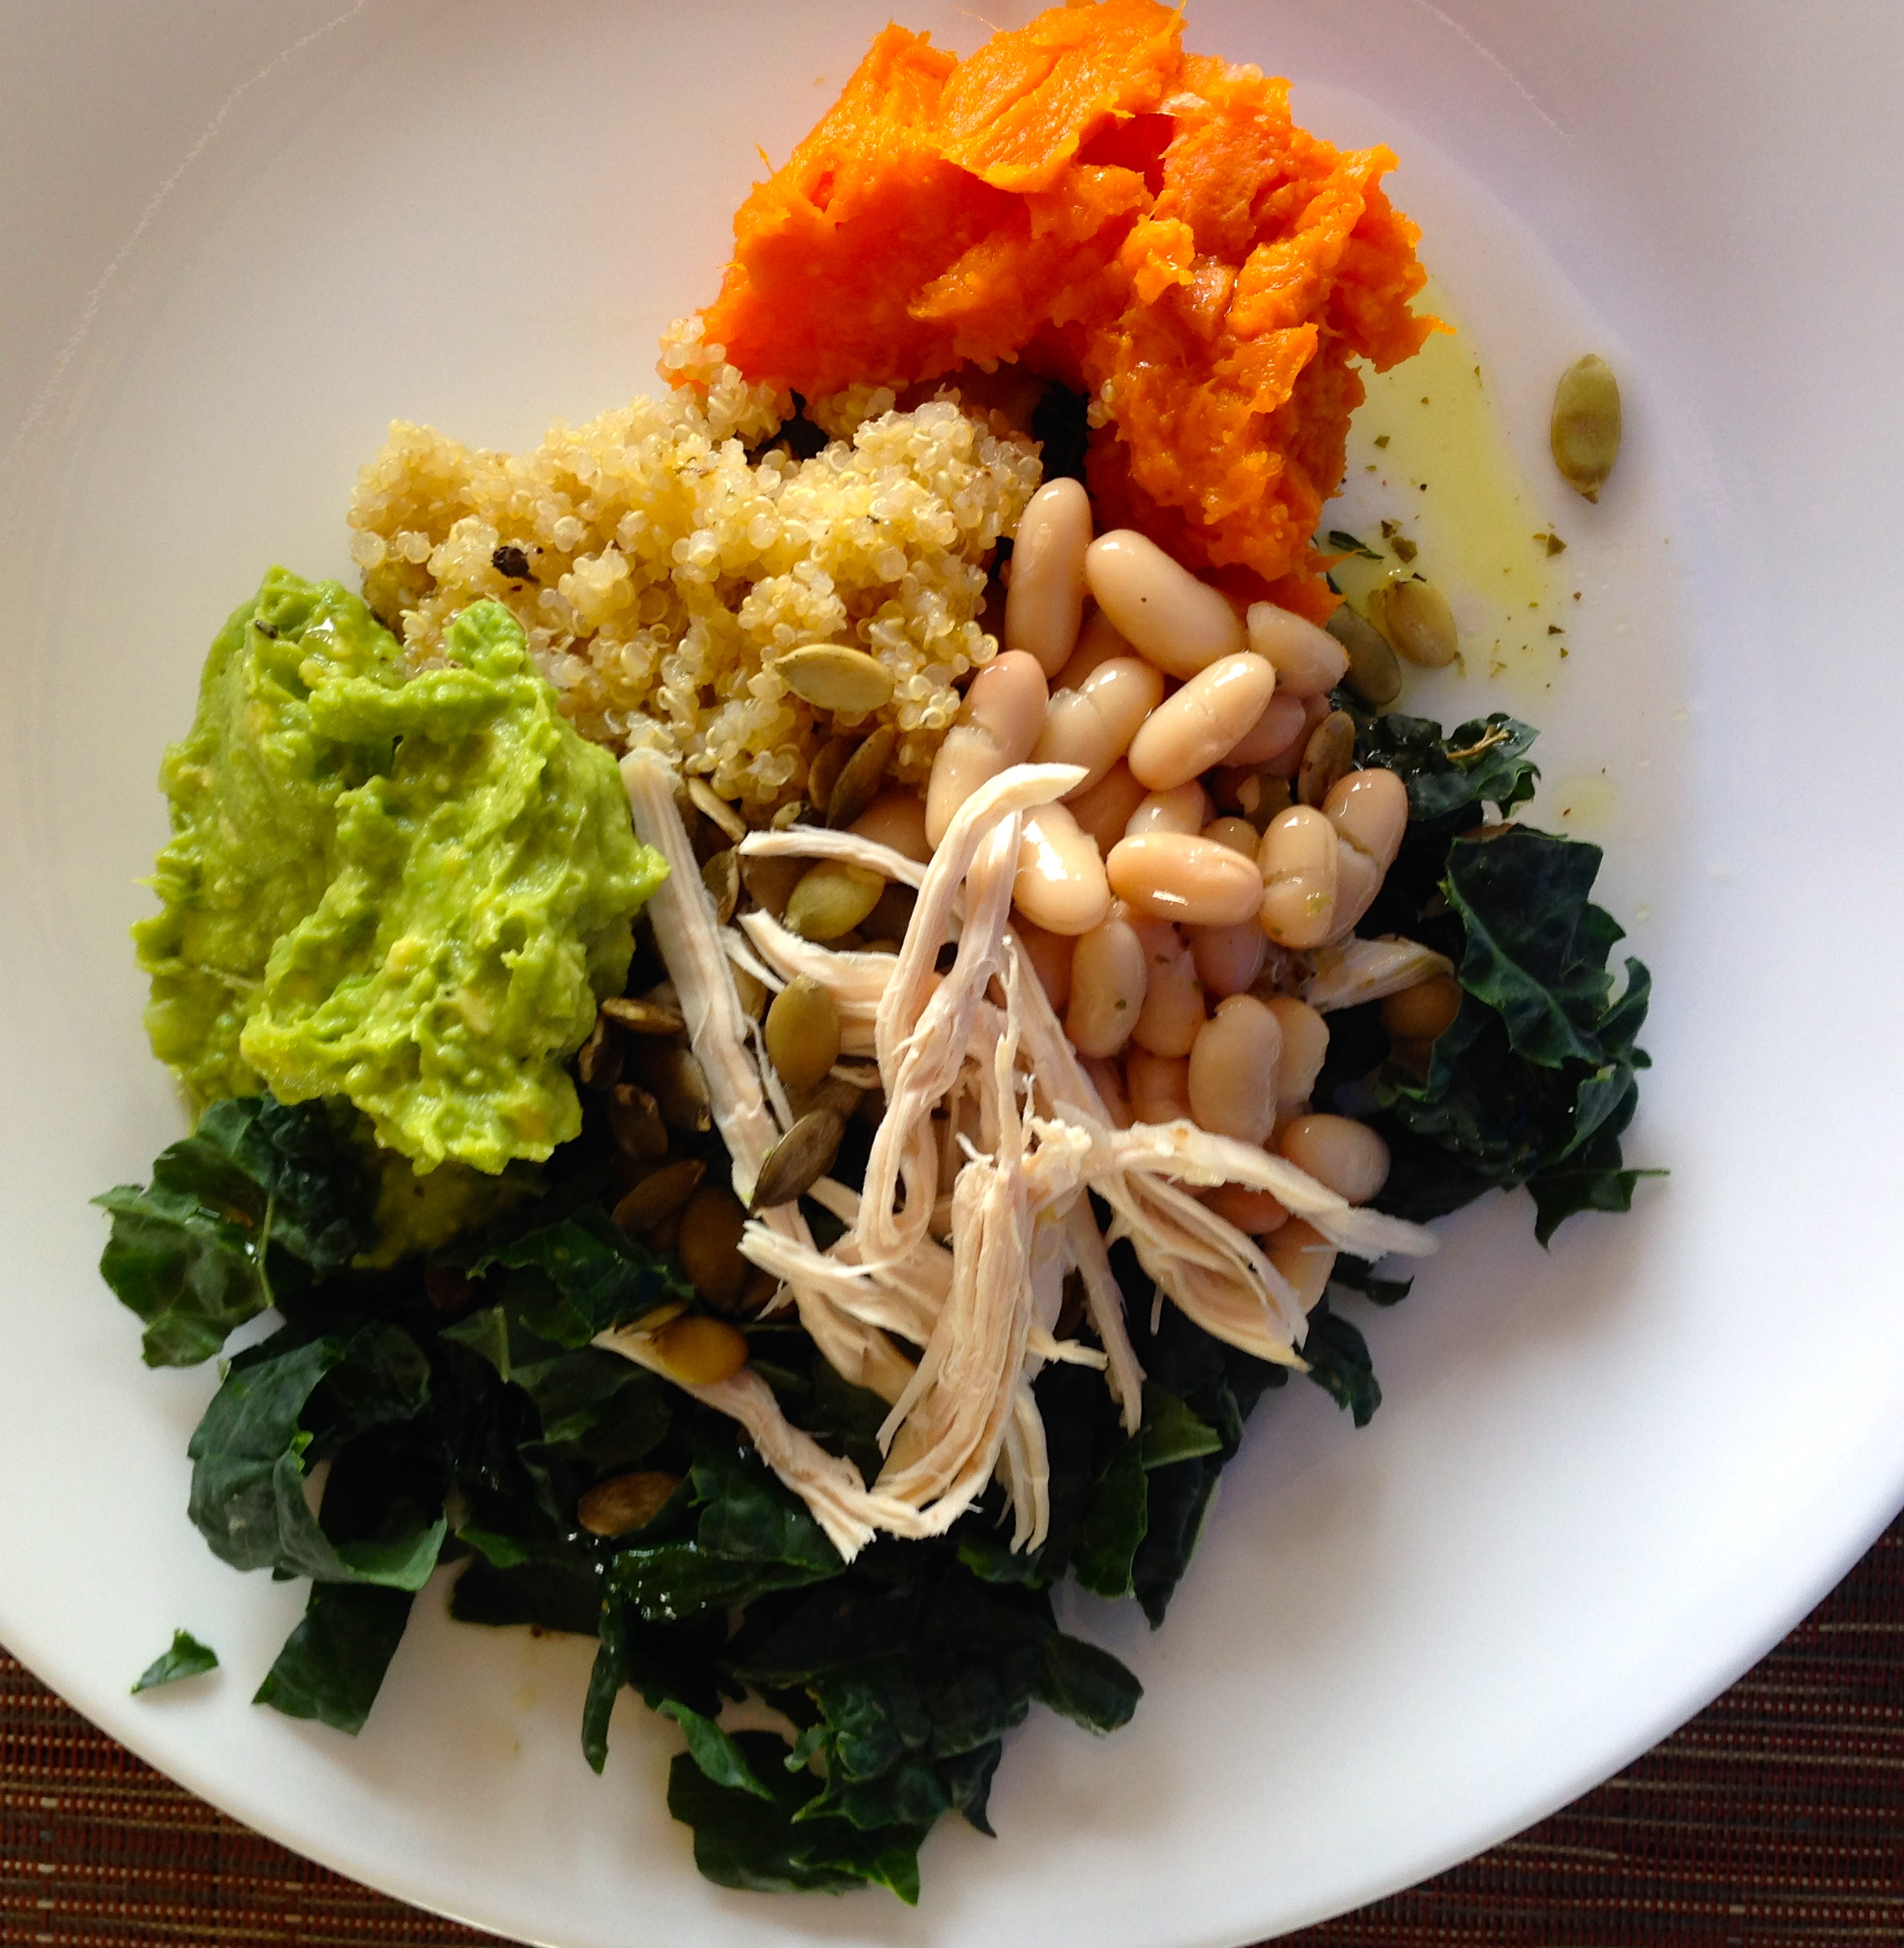 "One of my fave concocted ""cleanse salads"" that mixes sweet with savory. Shredded dinosaur kale, Tuscan beans, mashed avocado, quinoa, mashed sweet potato, pumpkin seeds.  Dressing: olive oil, lemon, salt and pepper. Splash of red wine vinegar."